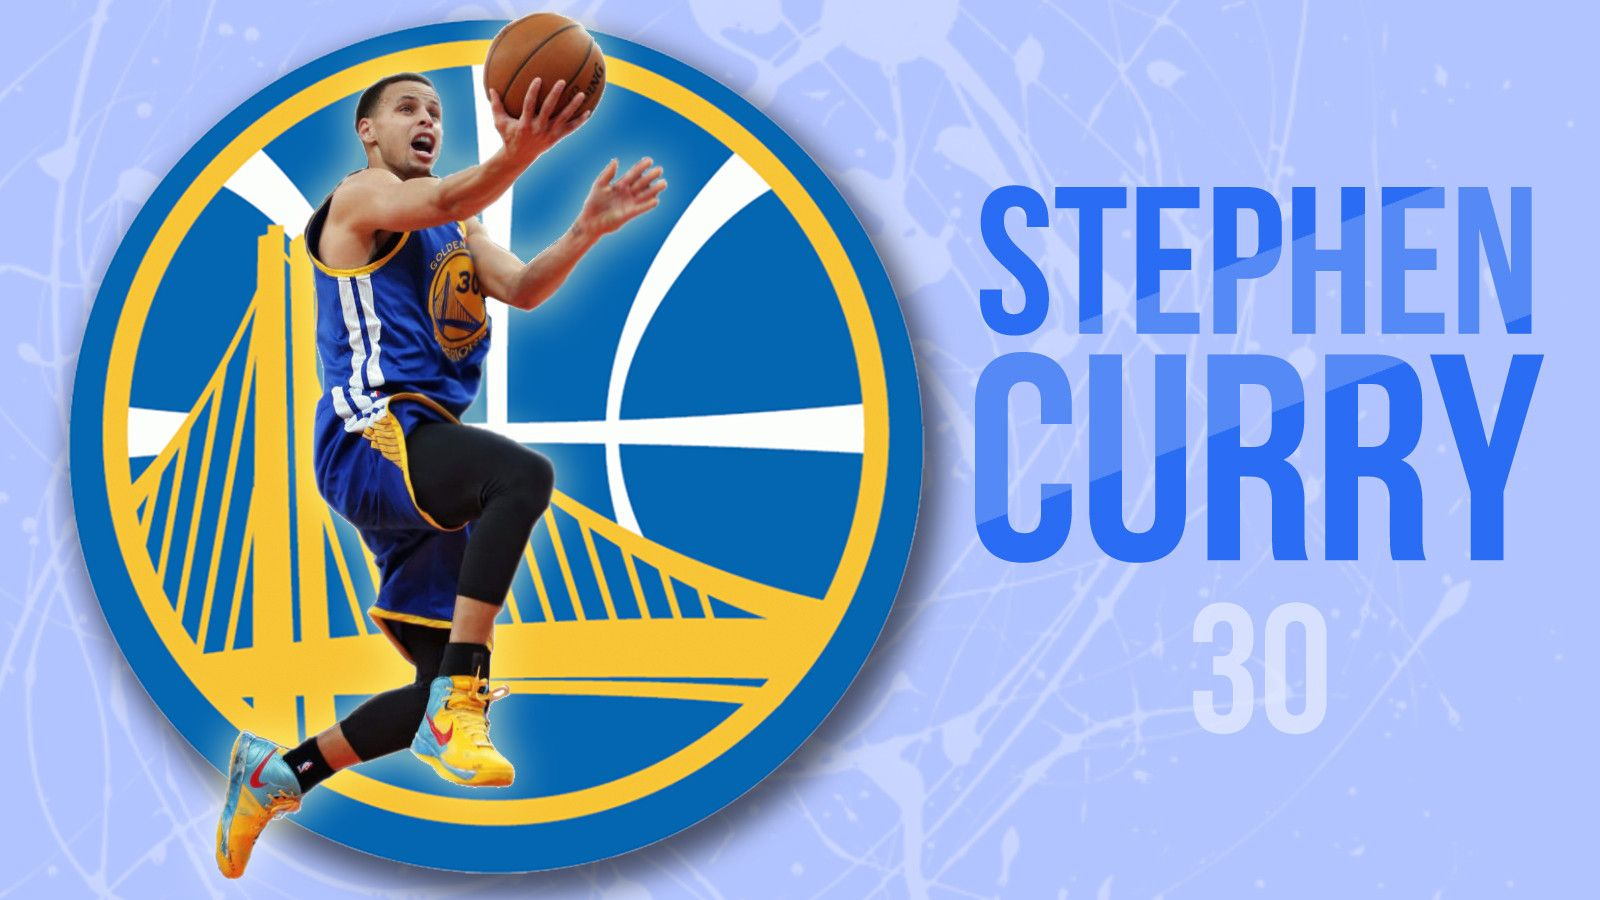 1600x900 Stephen Curry Wallpaper HD for Basketball Fans | PixelsTalk.Net